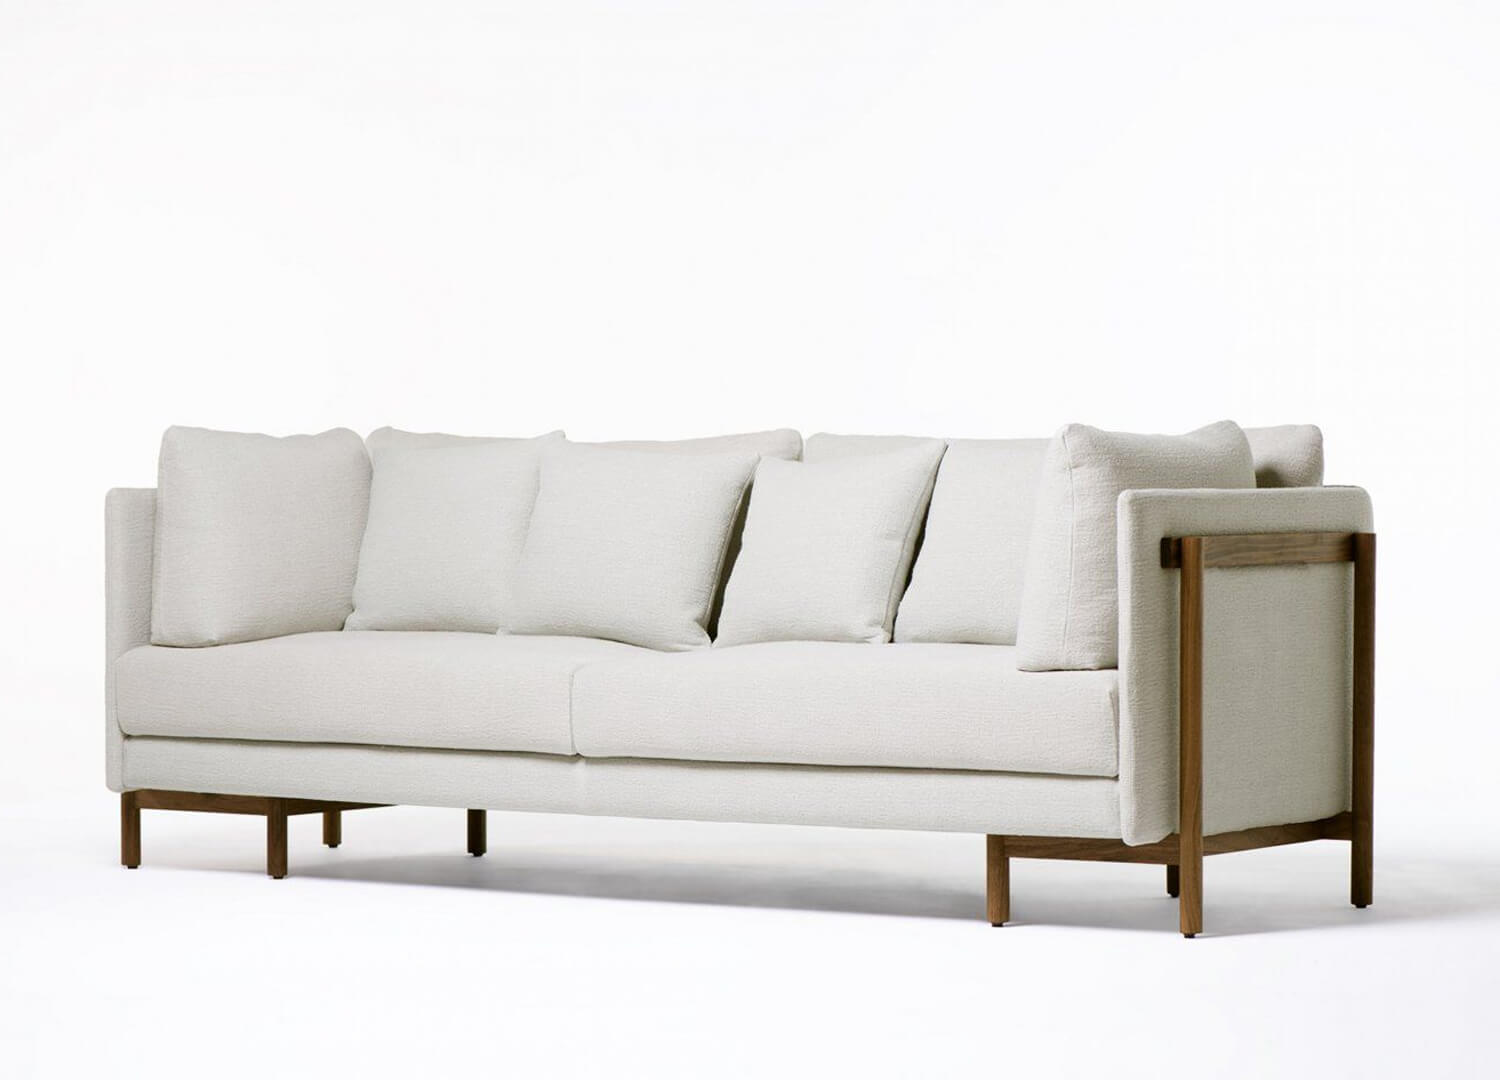 Est Living Design Directory Spence and Lyda Frame Sofa 1